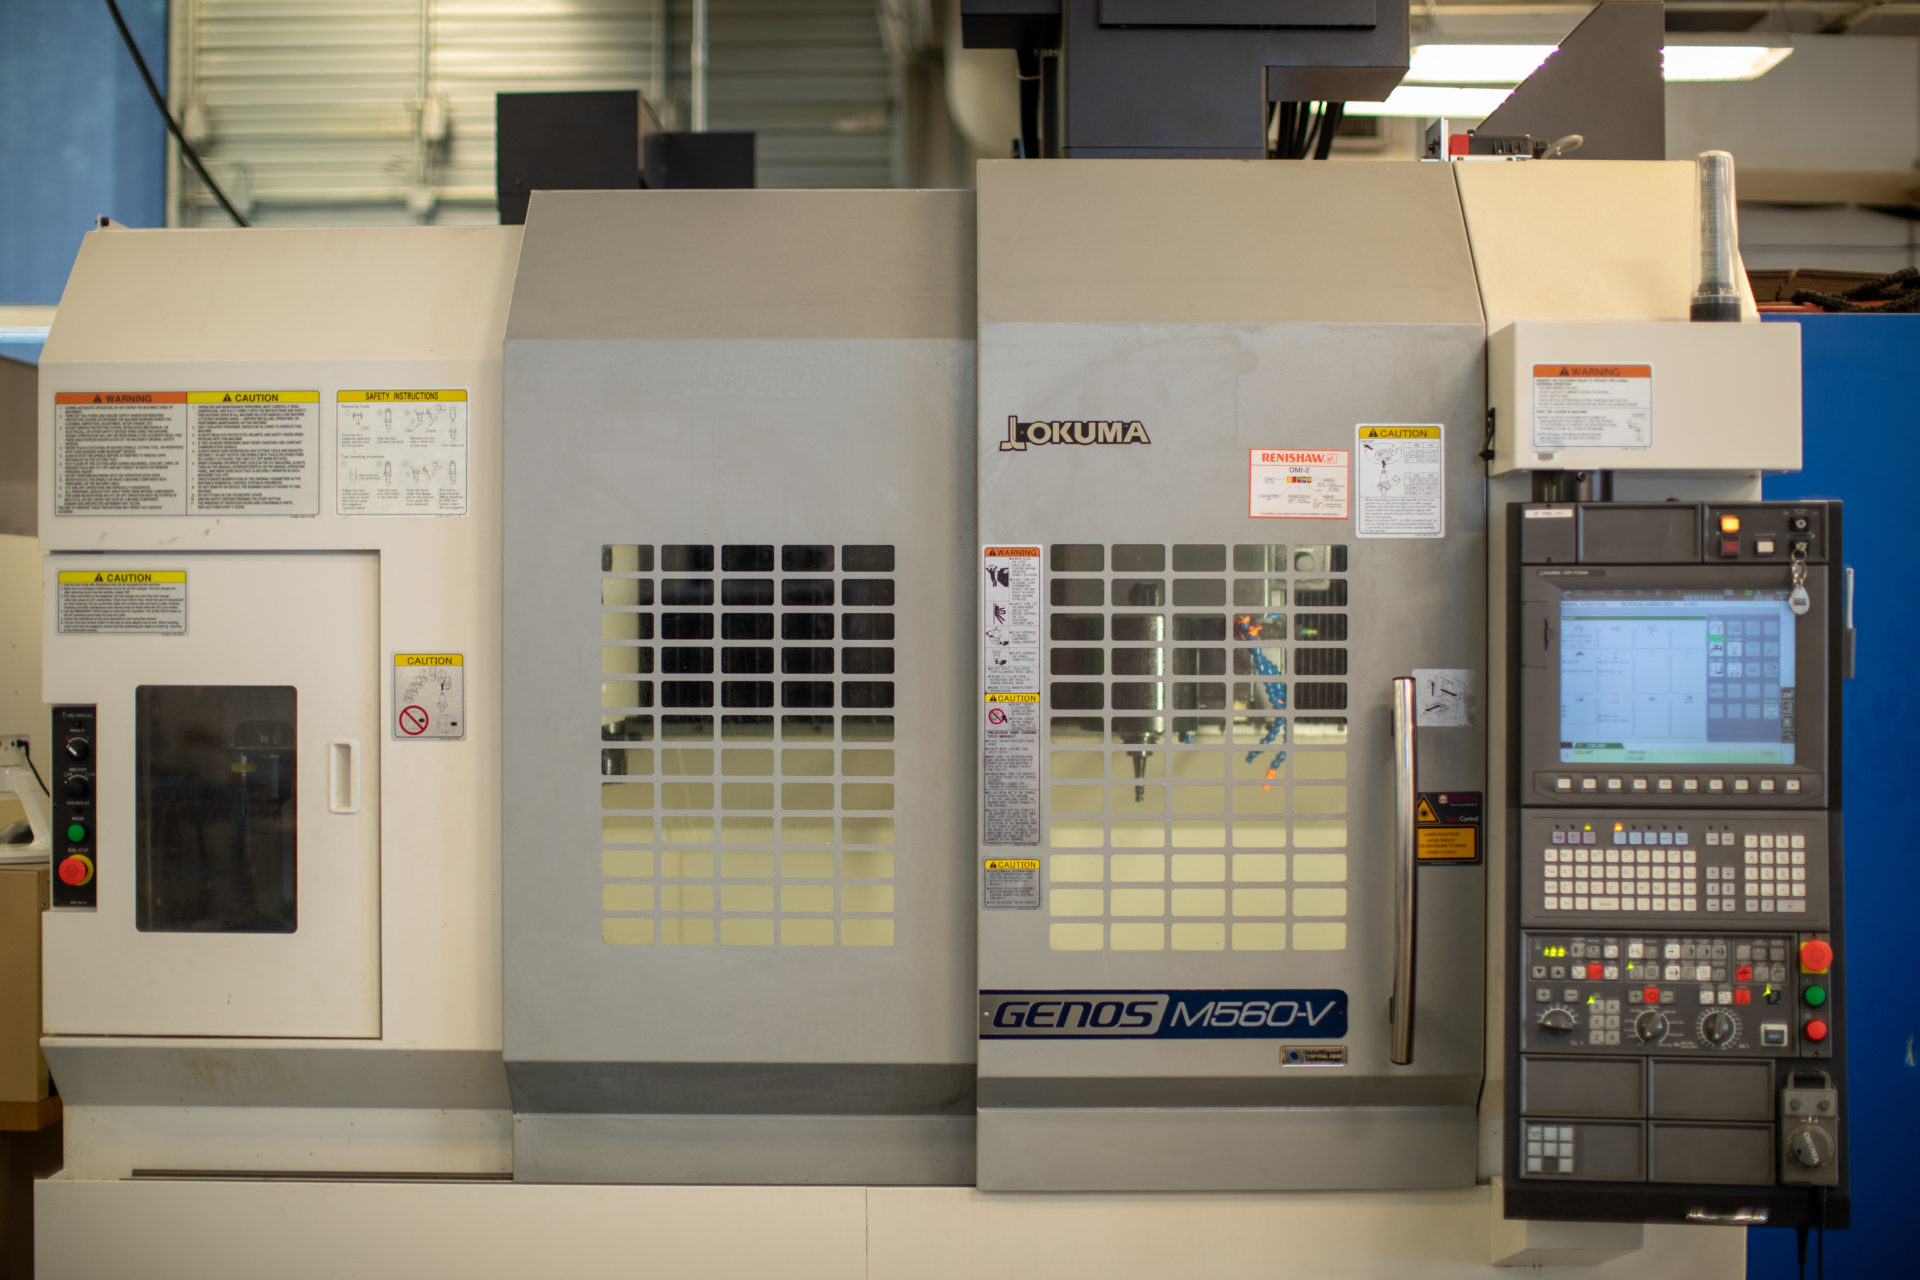 Okuma CNC mill used for machining research